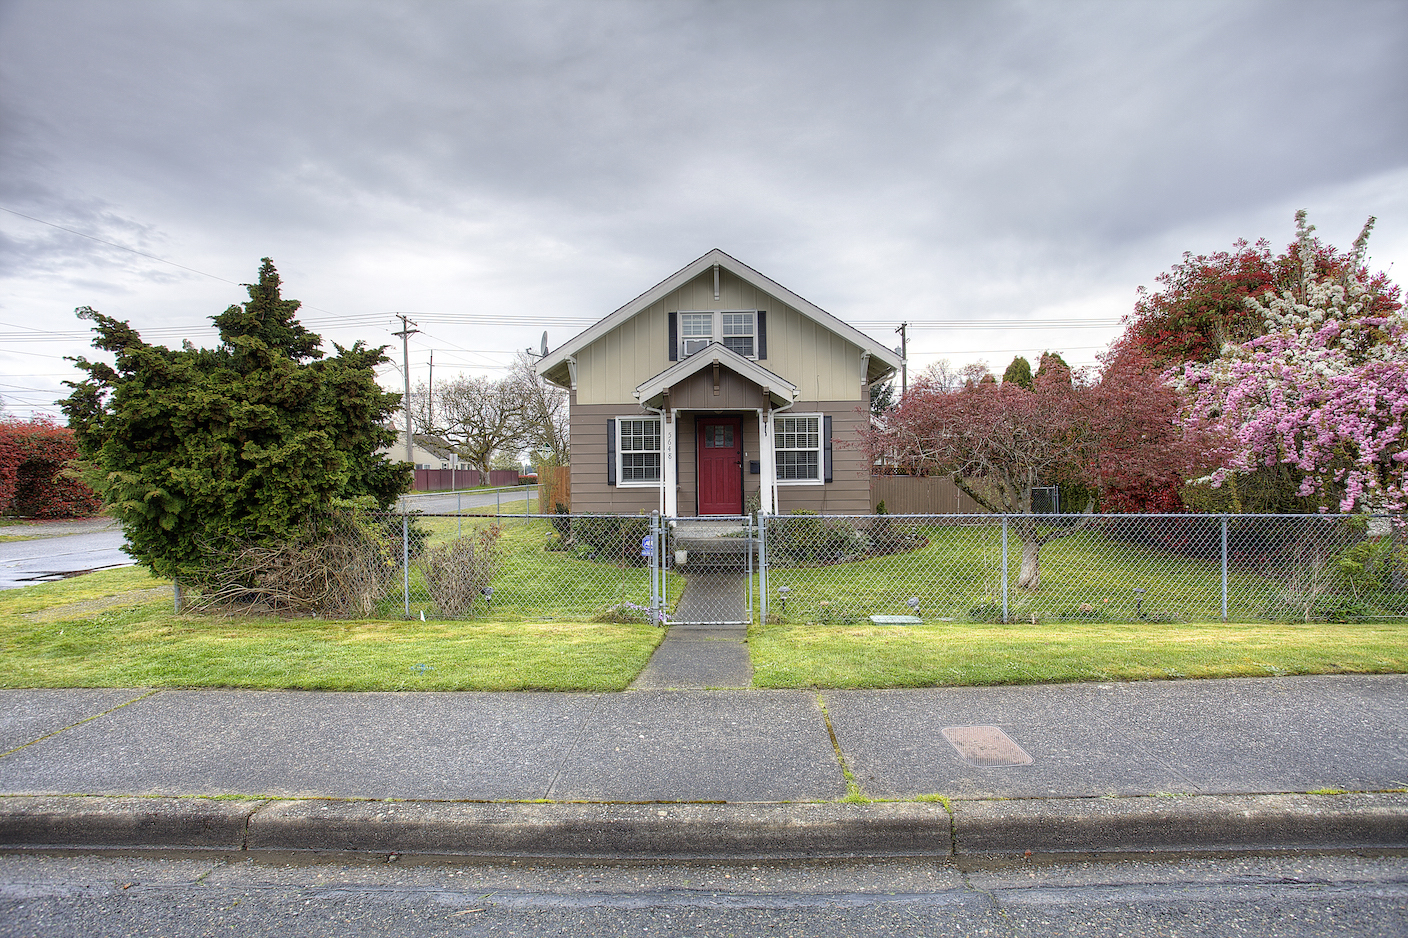 5648 S Oakes St, Tacoma, WA - USA (photo 1)